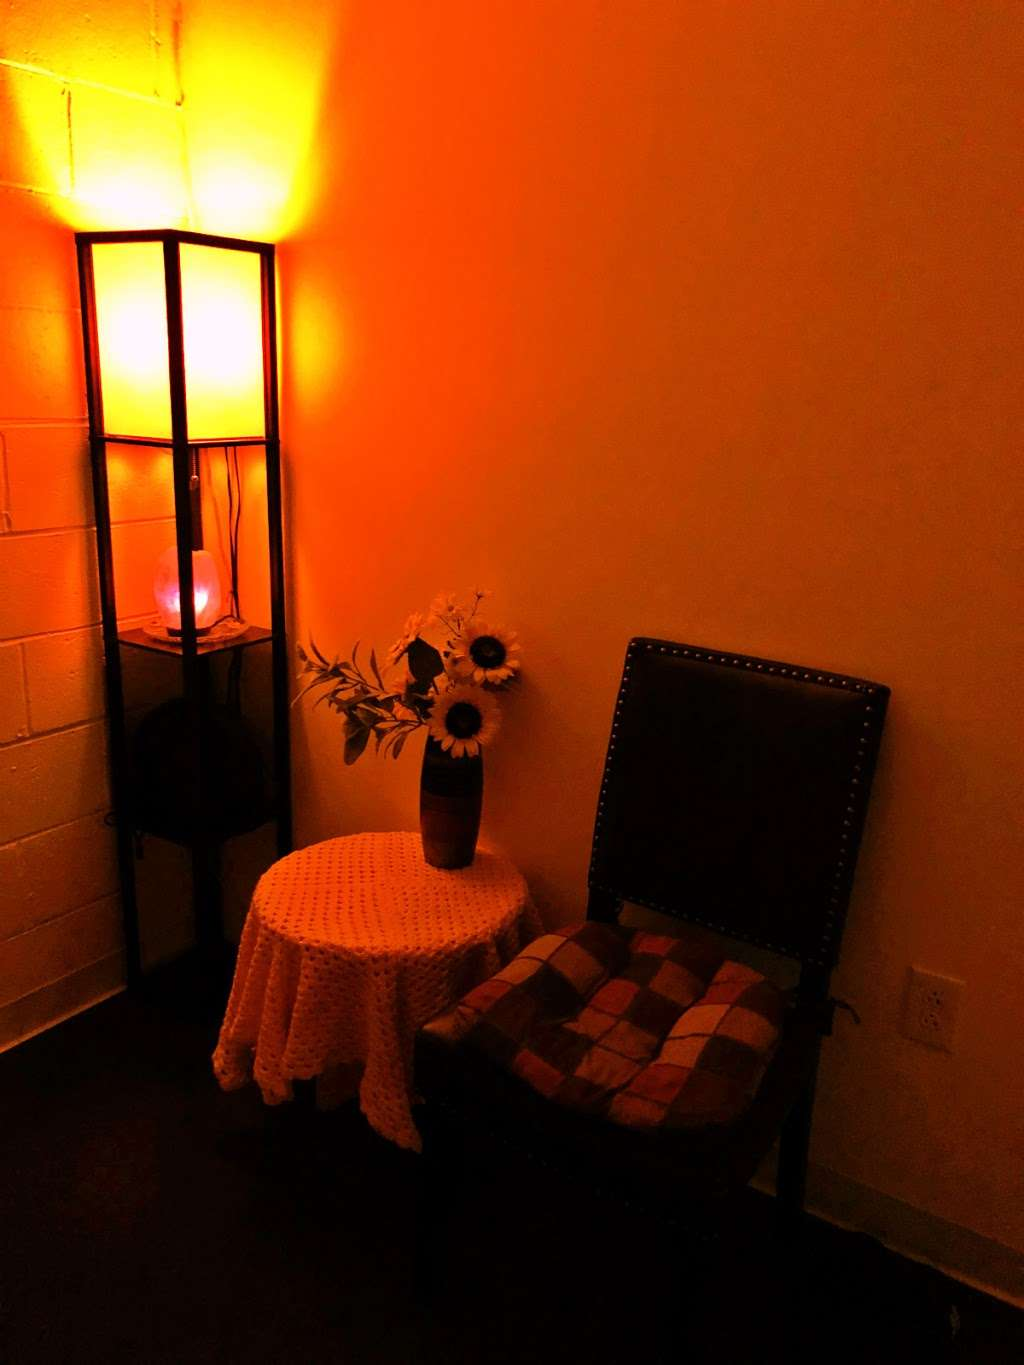 Stress Relief Spa - spa  | Photo 3 of 10 | Address: 2047 S Black Horse Pike, Williamstown, NJ 08094, USA | Phone: (856) 503-9969